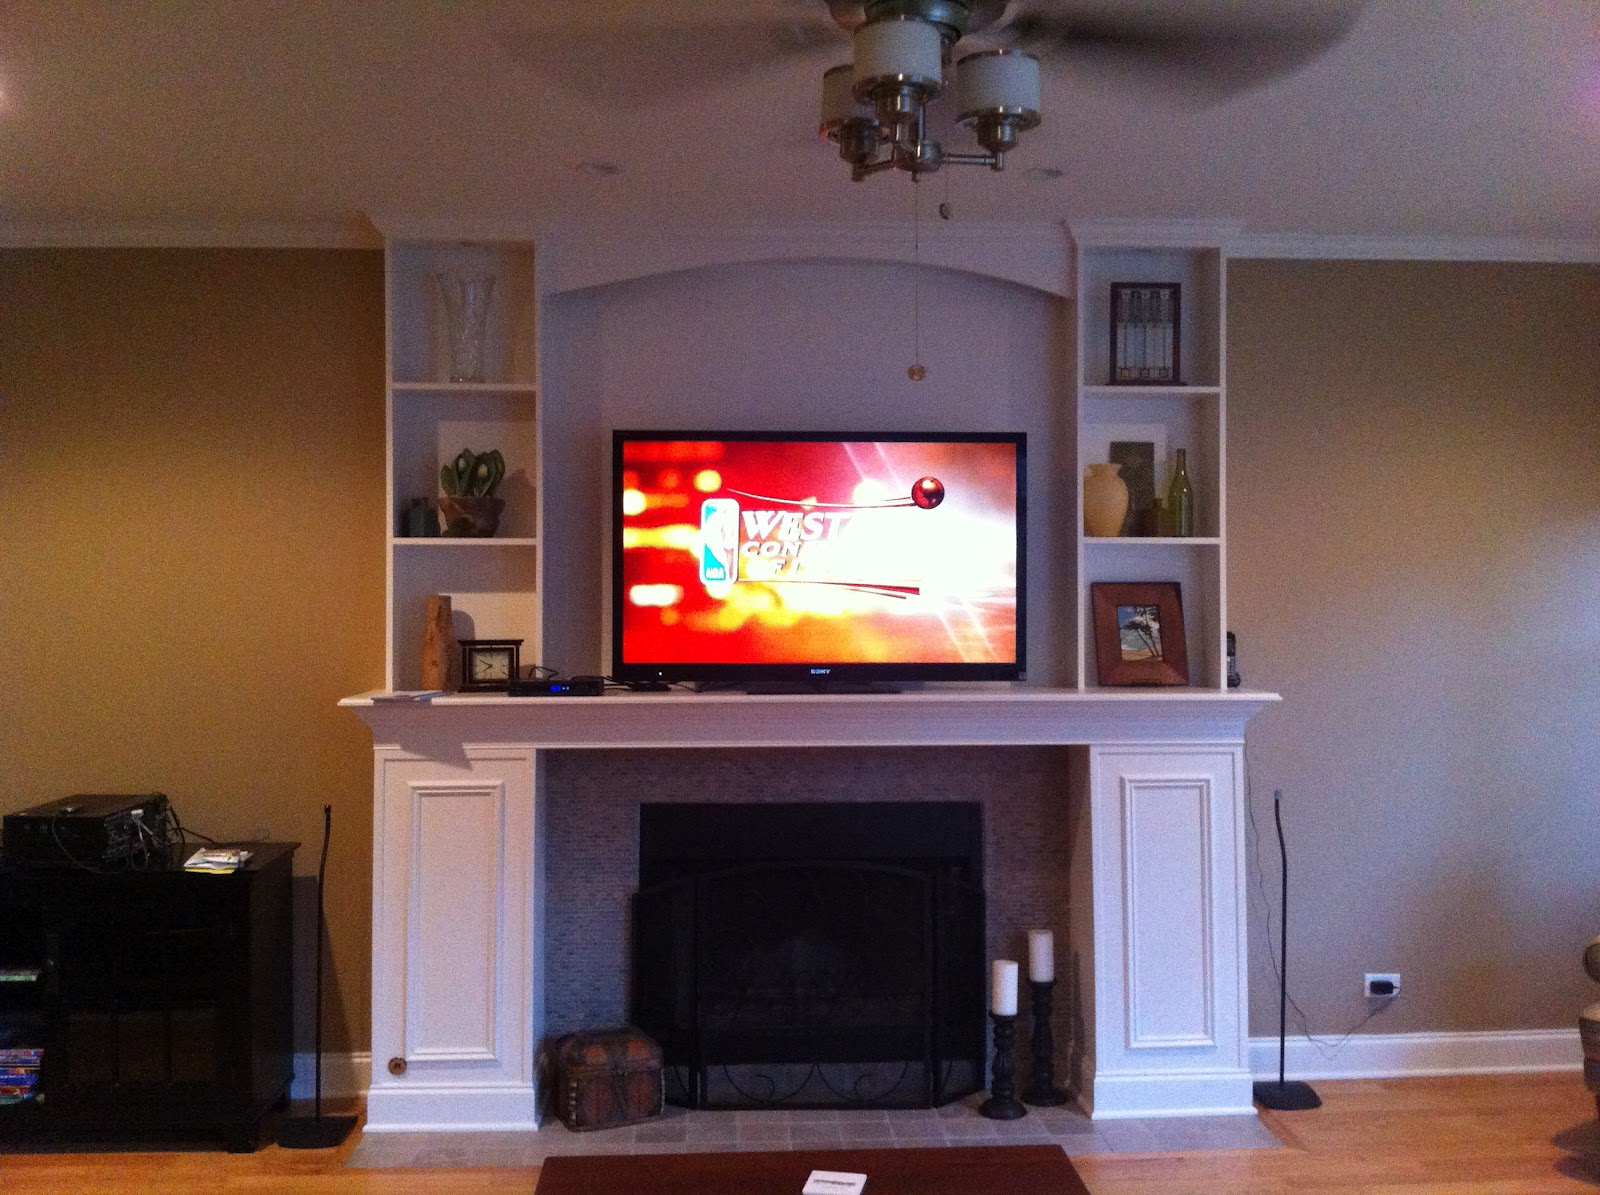 small resolution of when we re done i ll have a 55 led tv mounted over the fireplace with high speed hdmi cabling running through the walls directly to the set for our